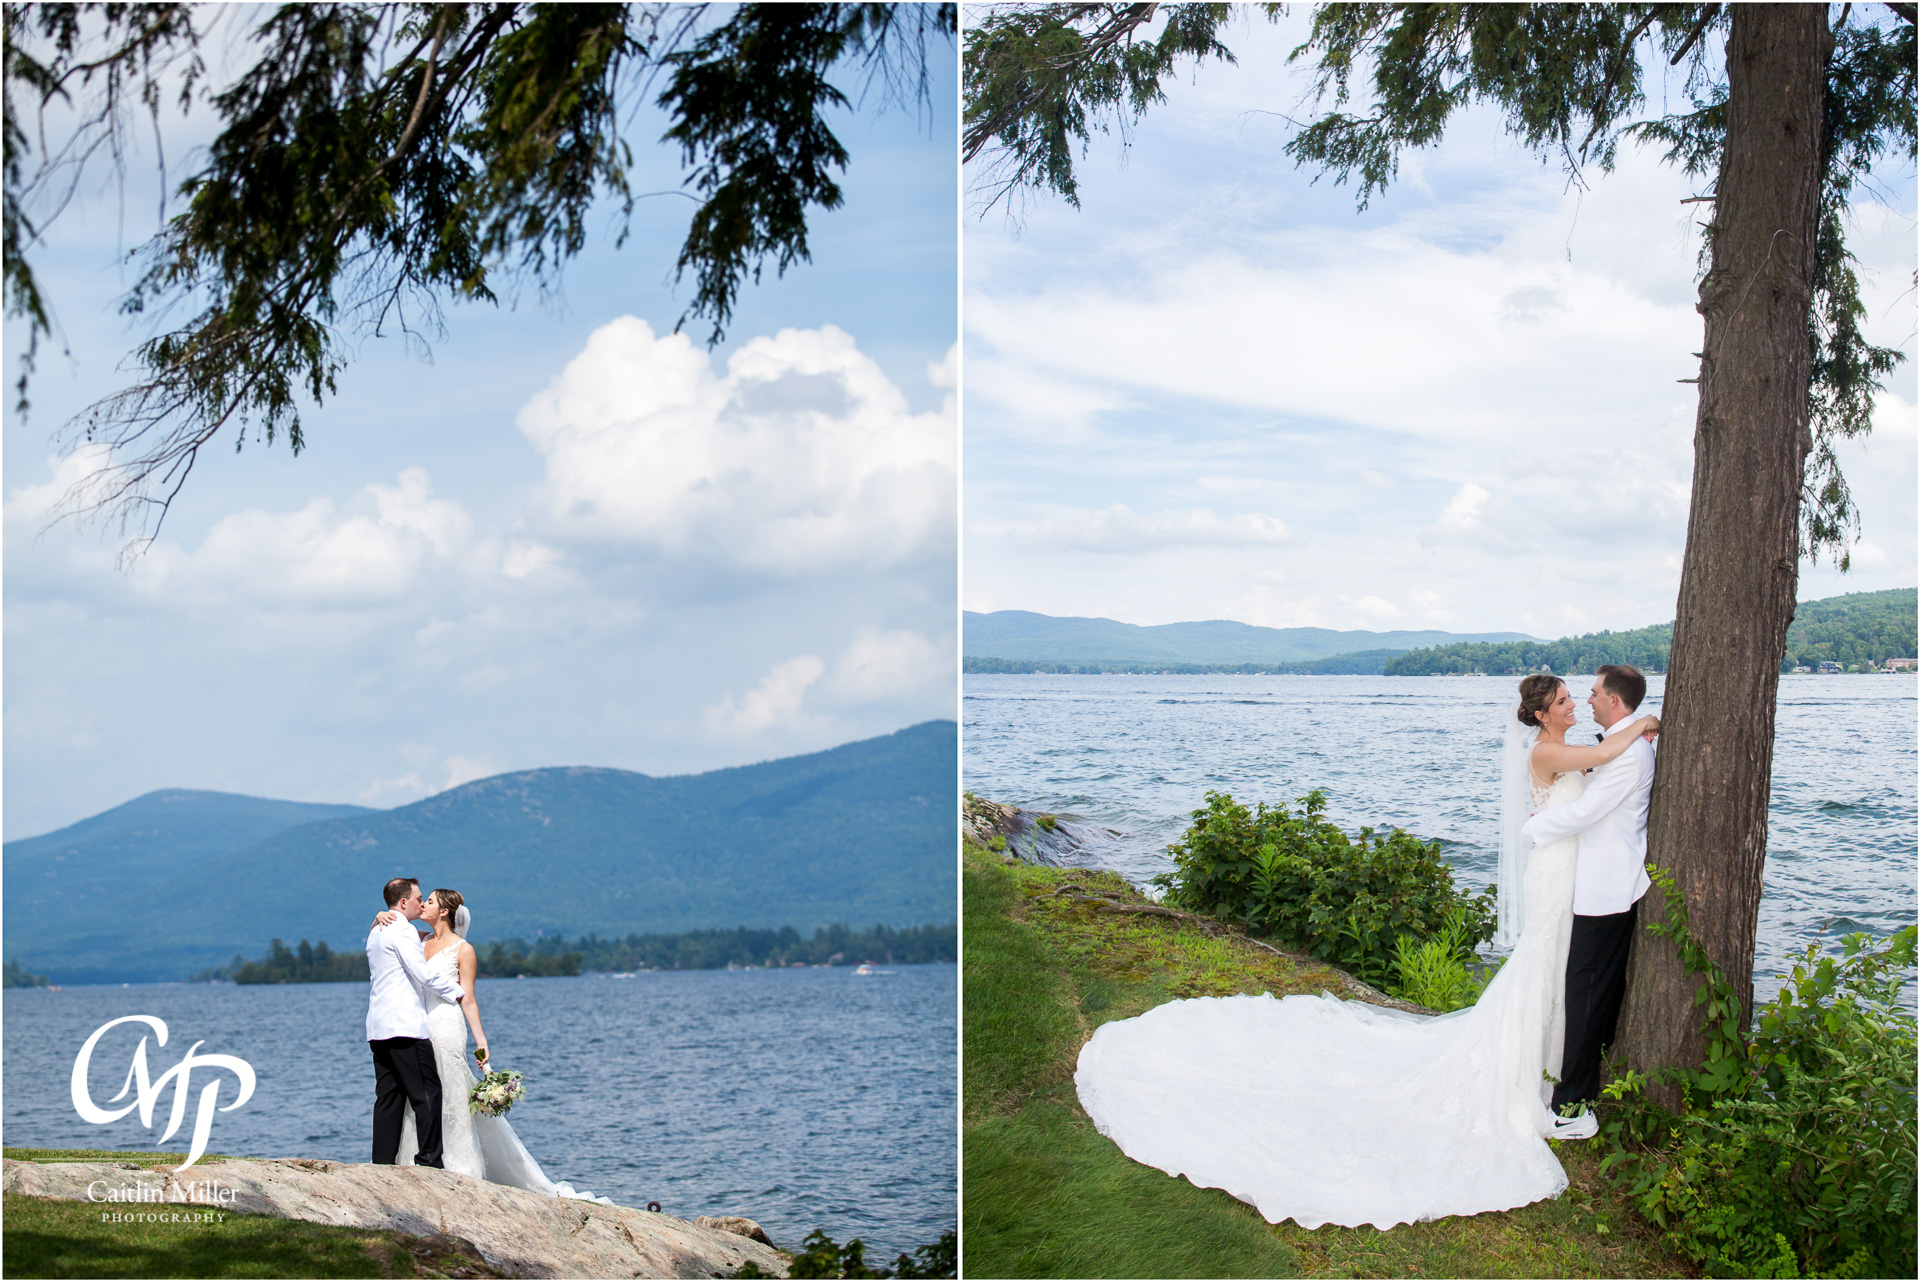 sale-7.jpg from Kendall and Chris's Lake George wedding at the Inn at Erlowest by Saratoga Wedding Photographer Caitlin Miller Photography. Lake George Wedding Photographer. Adirondack wedding photographer. Albany wedding photographer. Lake Placid Wedding Photographer. Saratoga Wedding Photographer